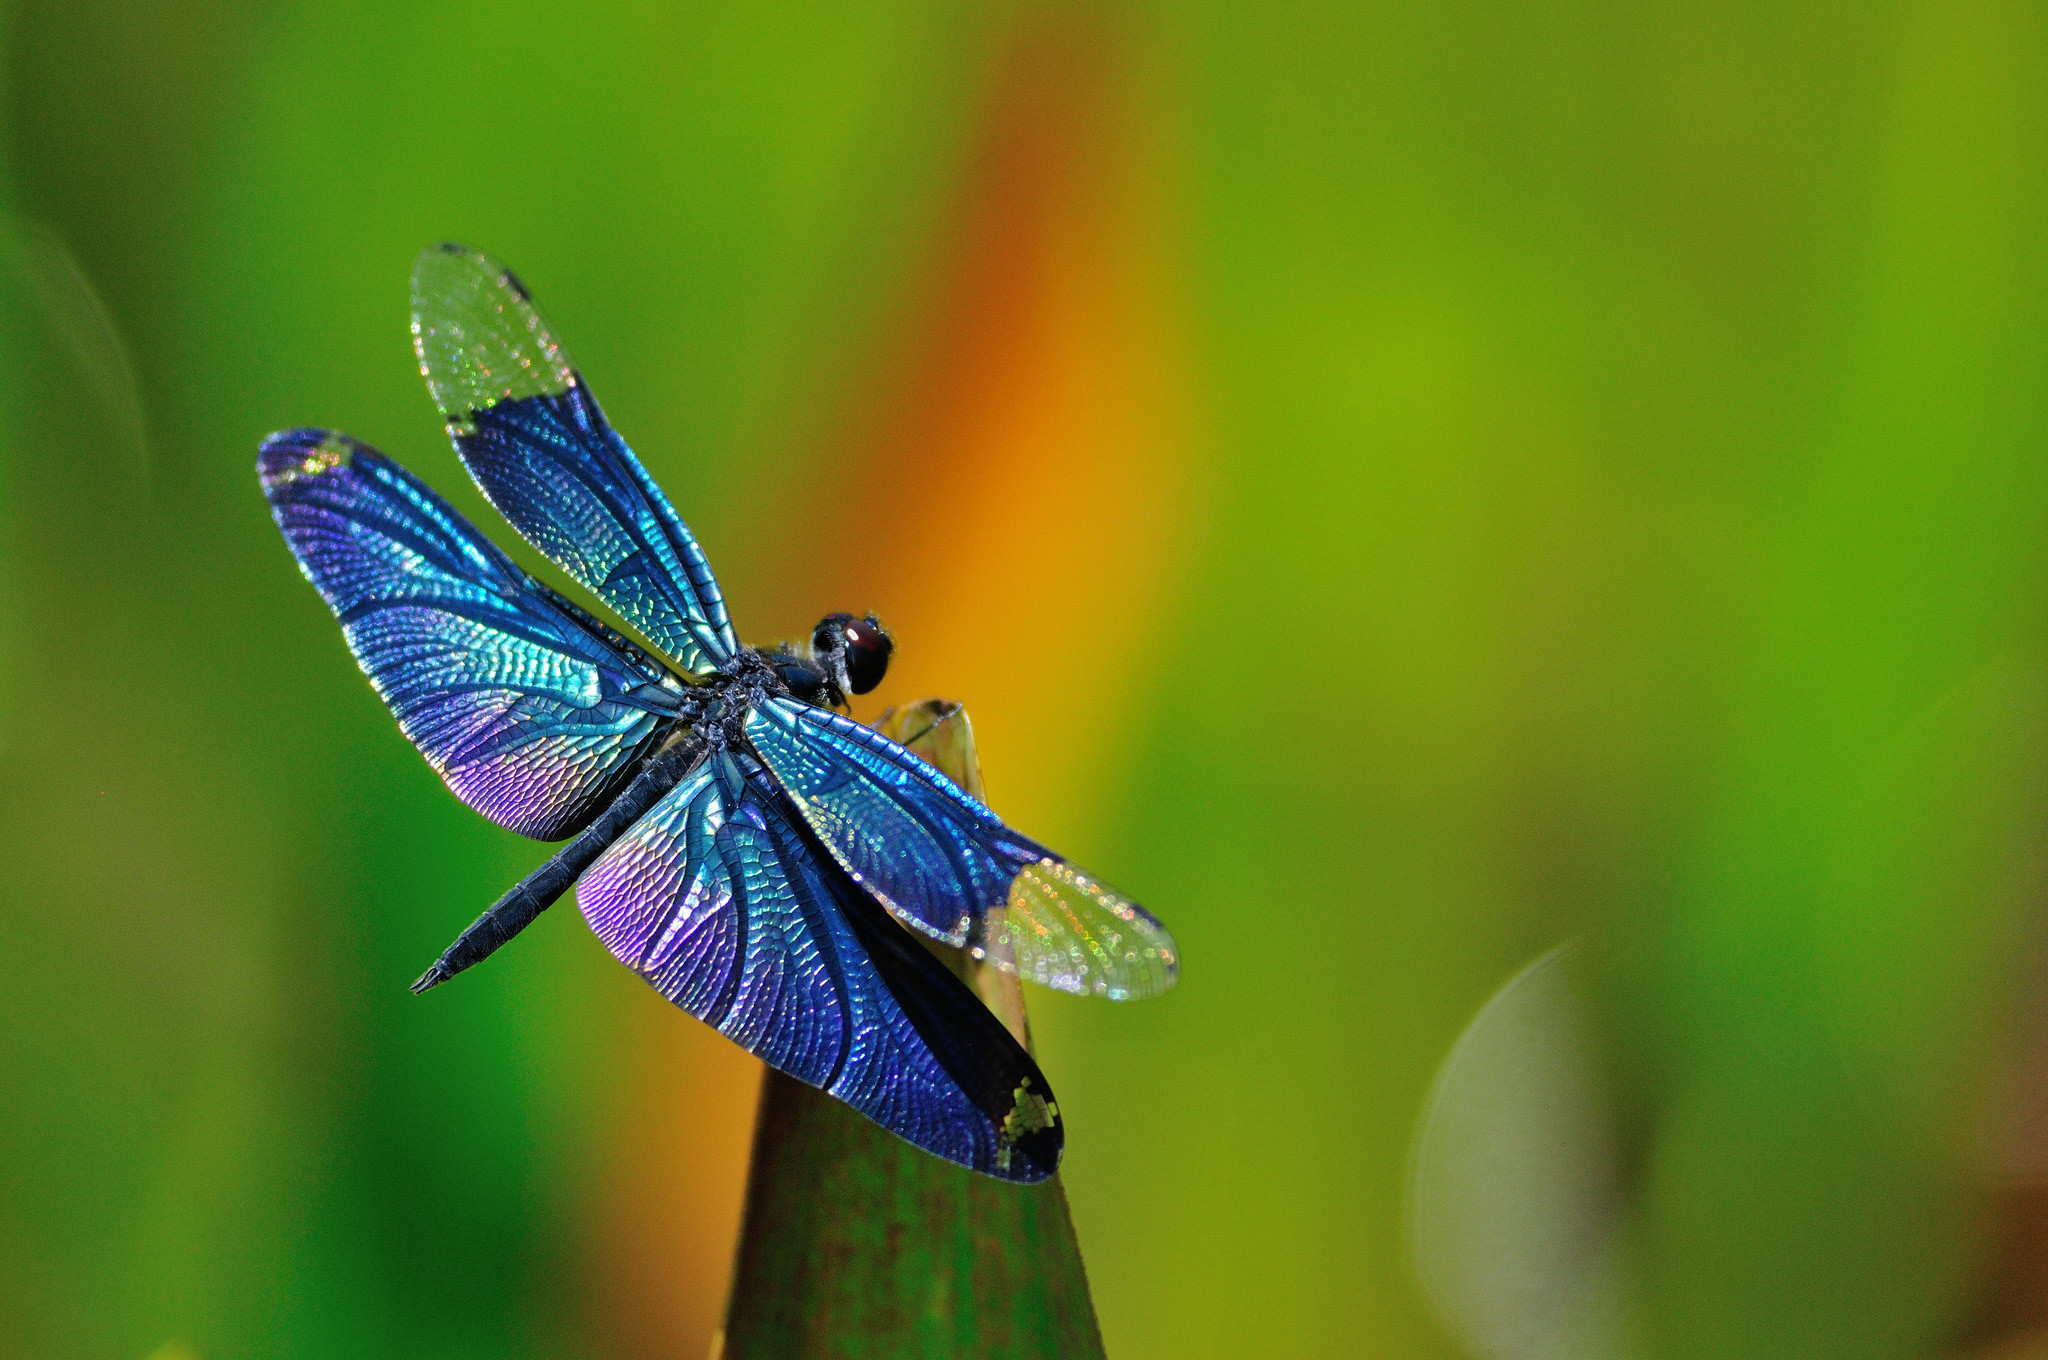 purple dragonfly wallpaper